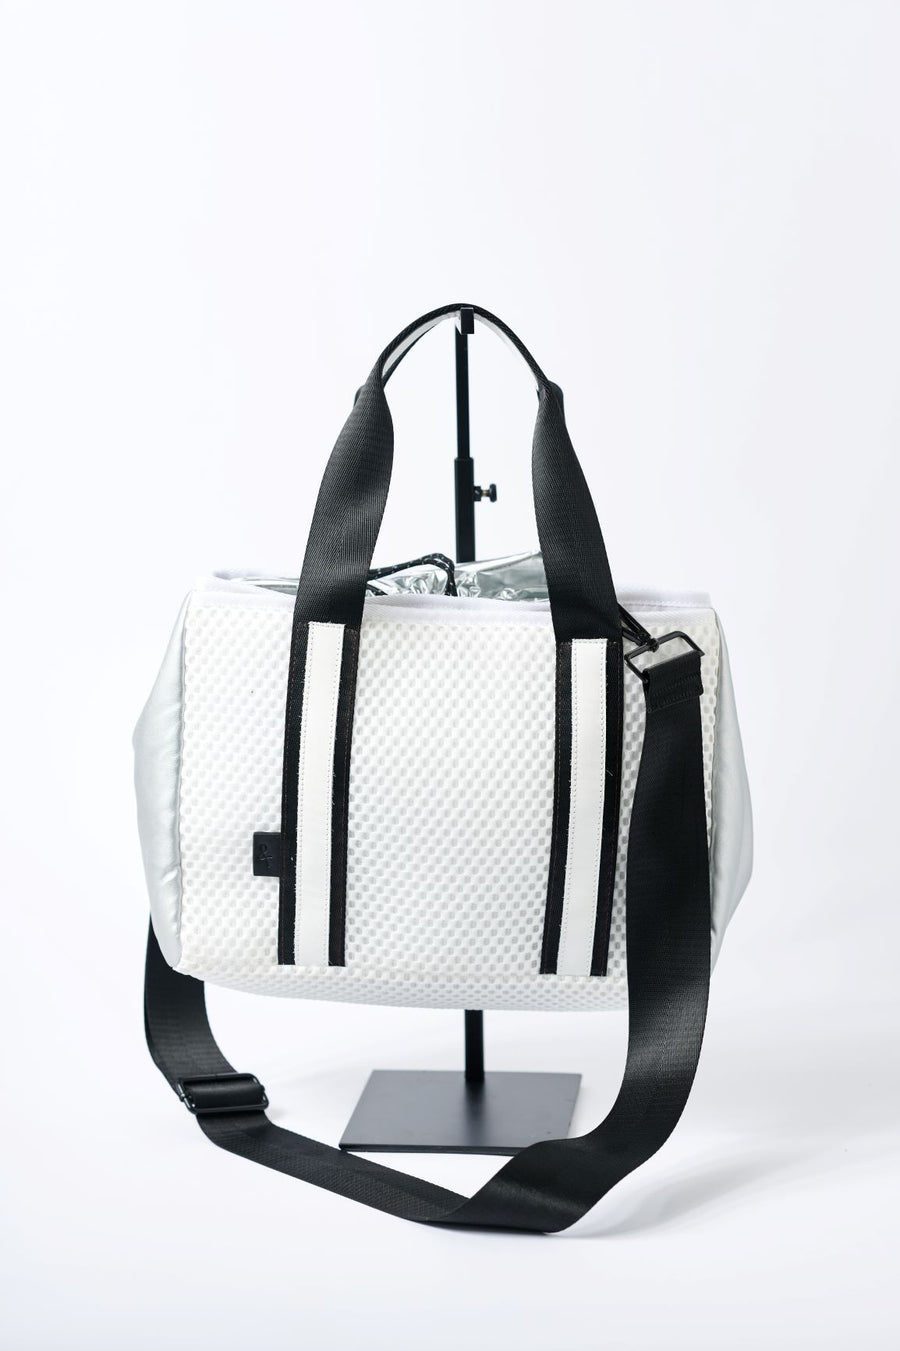 Small white mesh tote with silver cinch top and crossbody strap